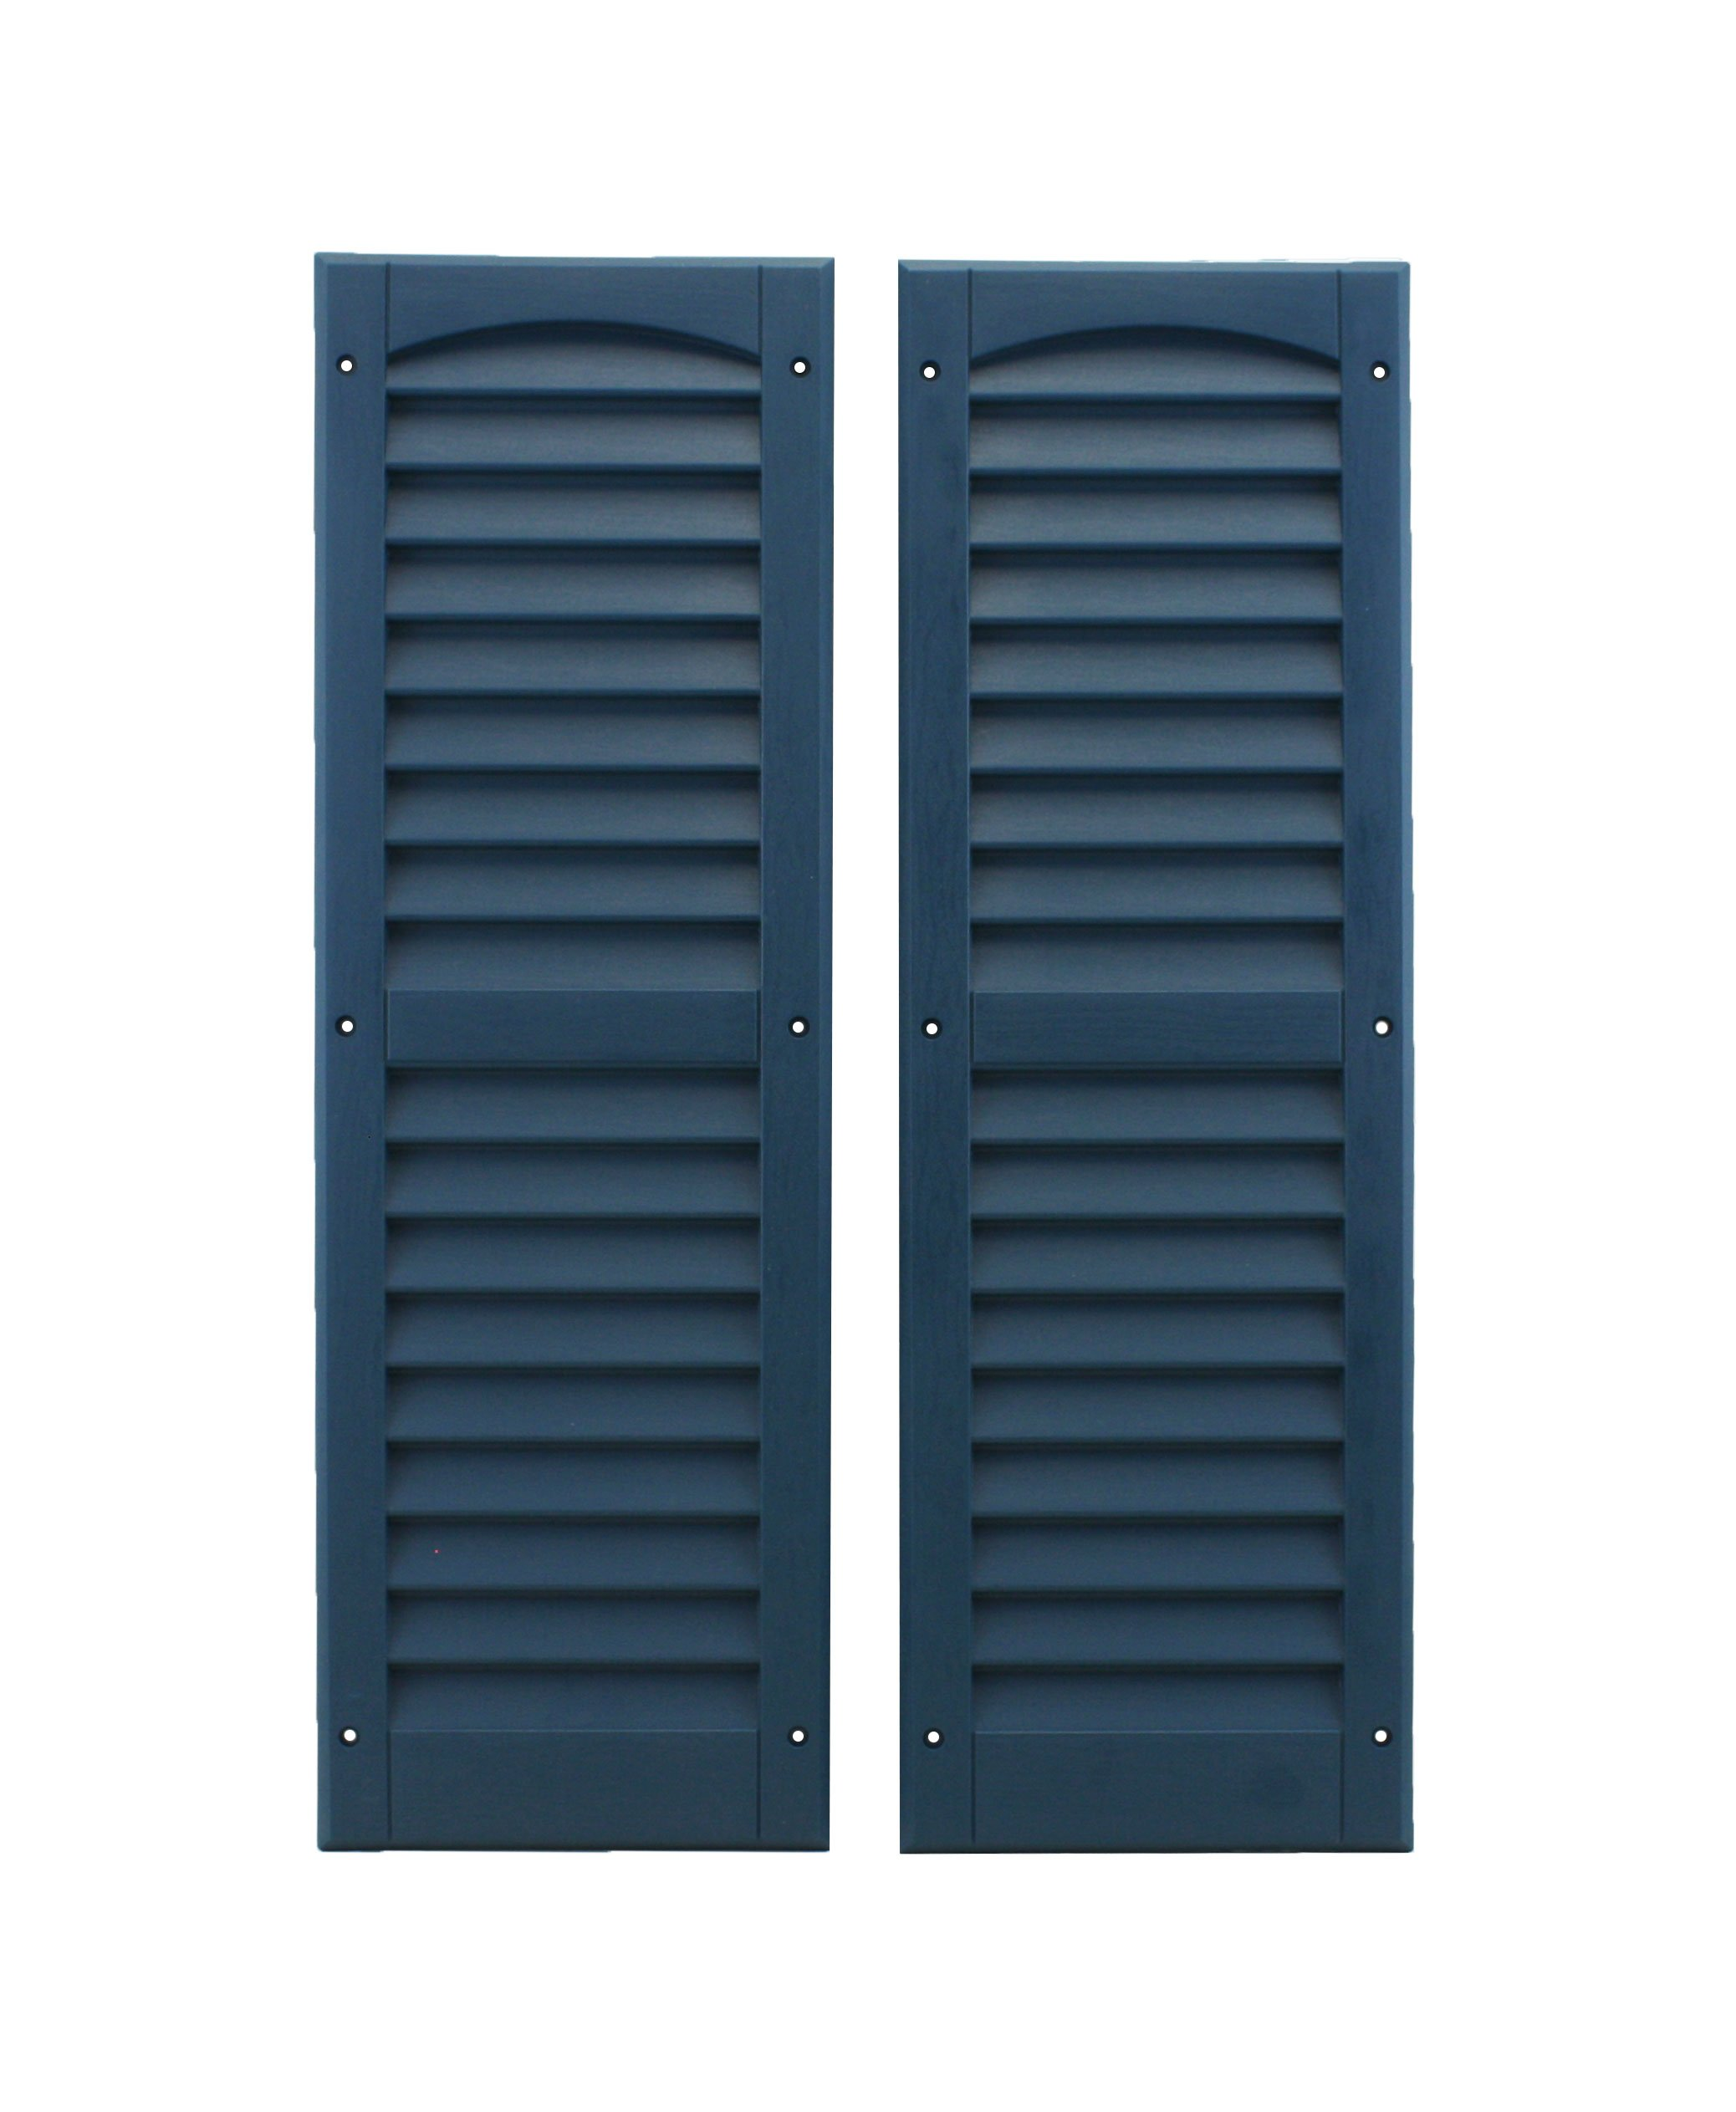 Louvered Shed Shutter or Playhouse Shutter, Blue 9'' X 27'', 1 Pair